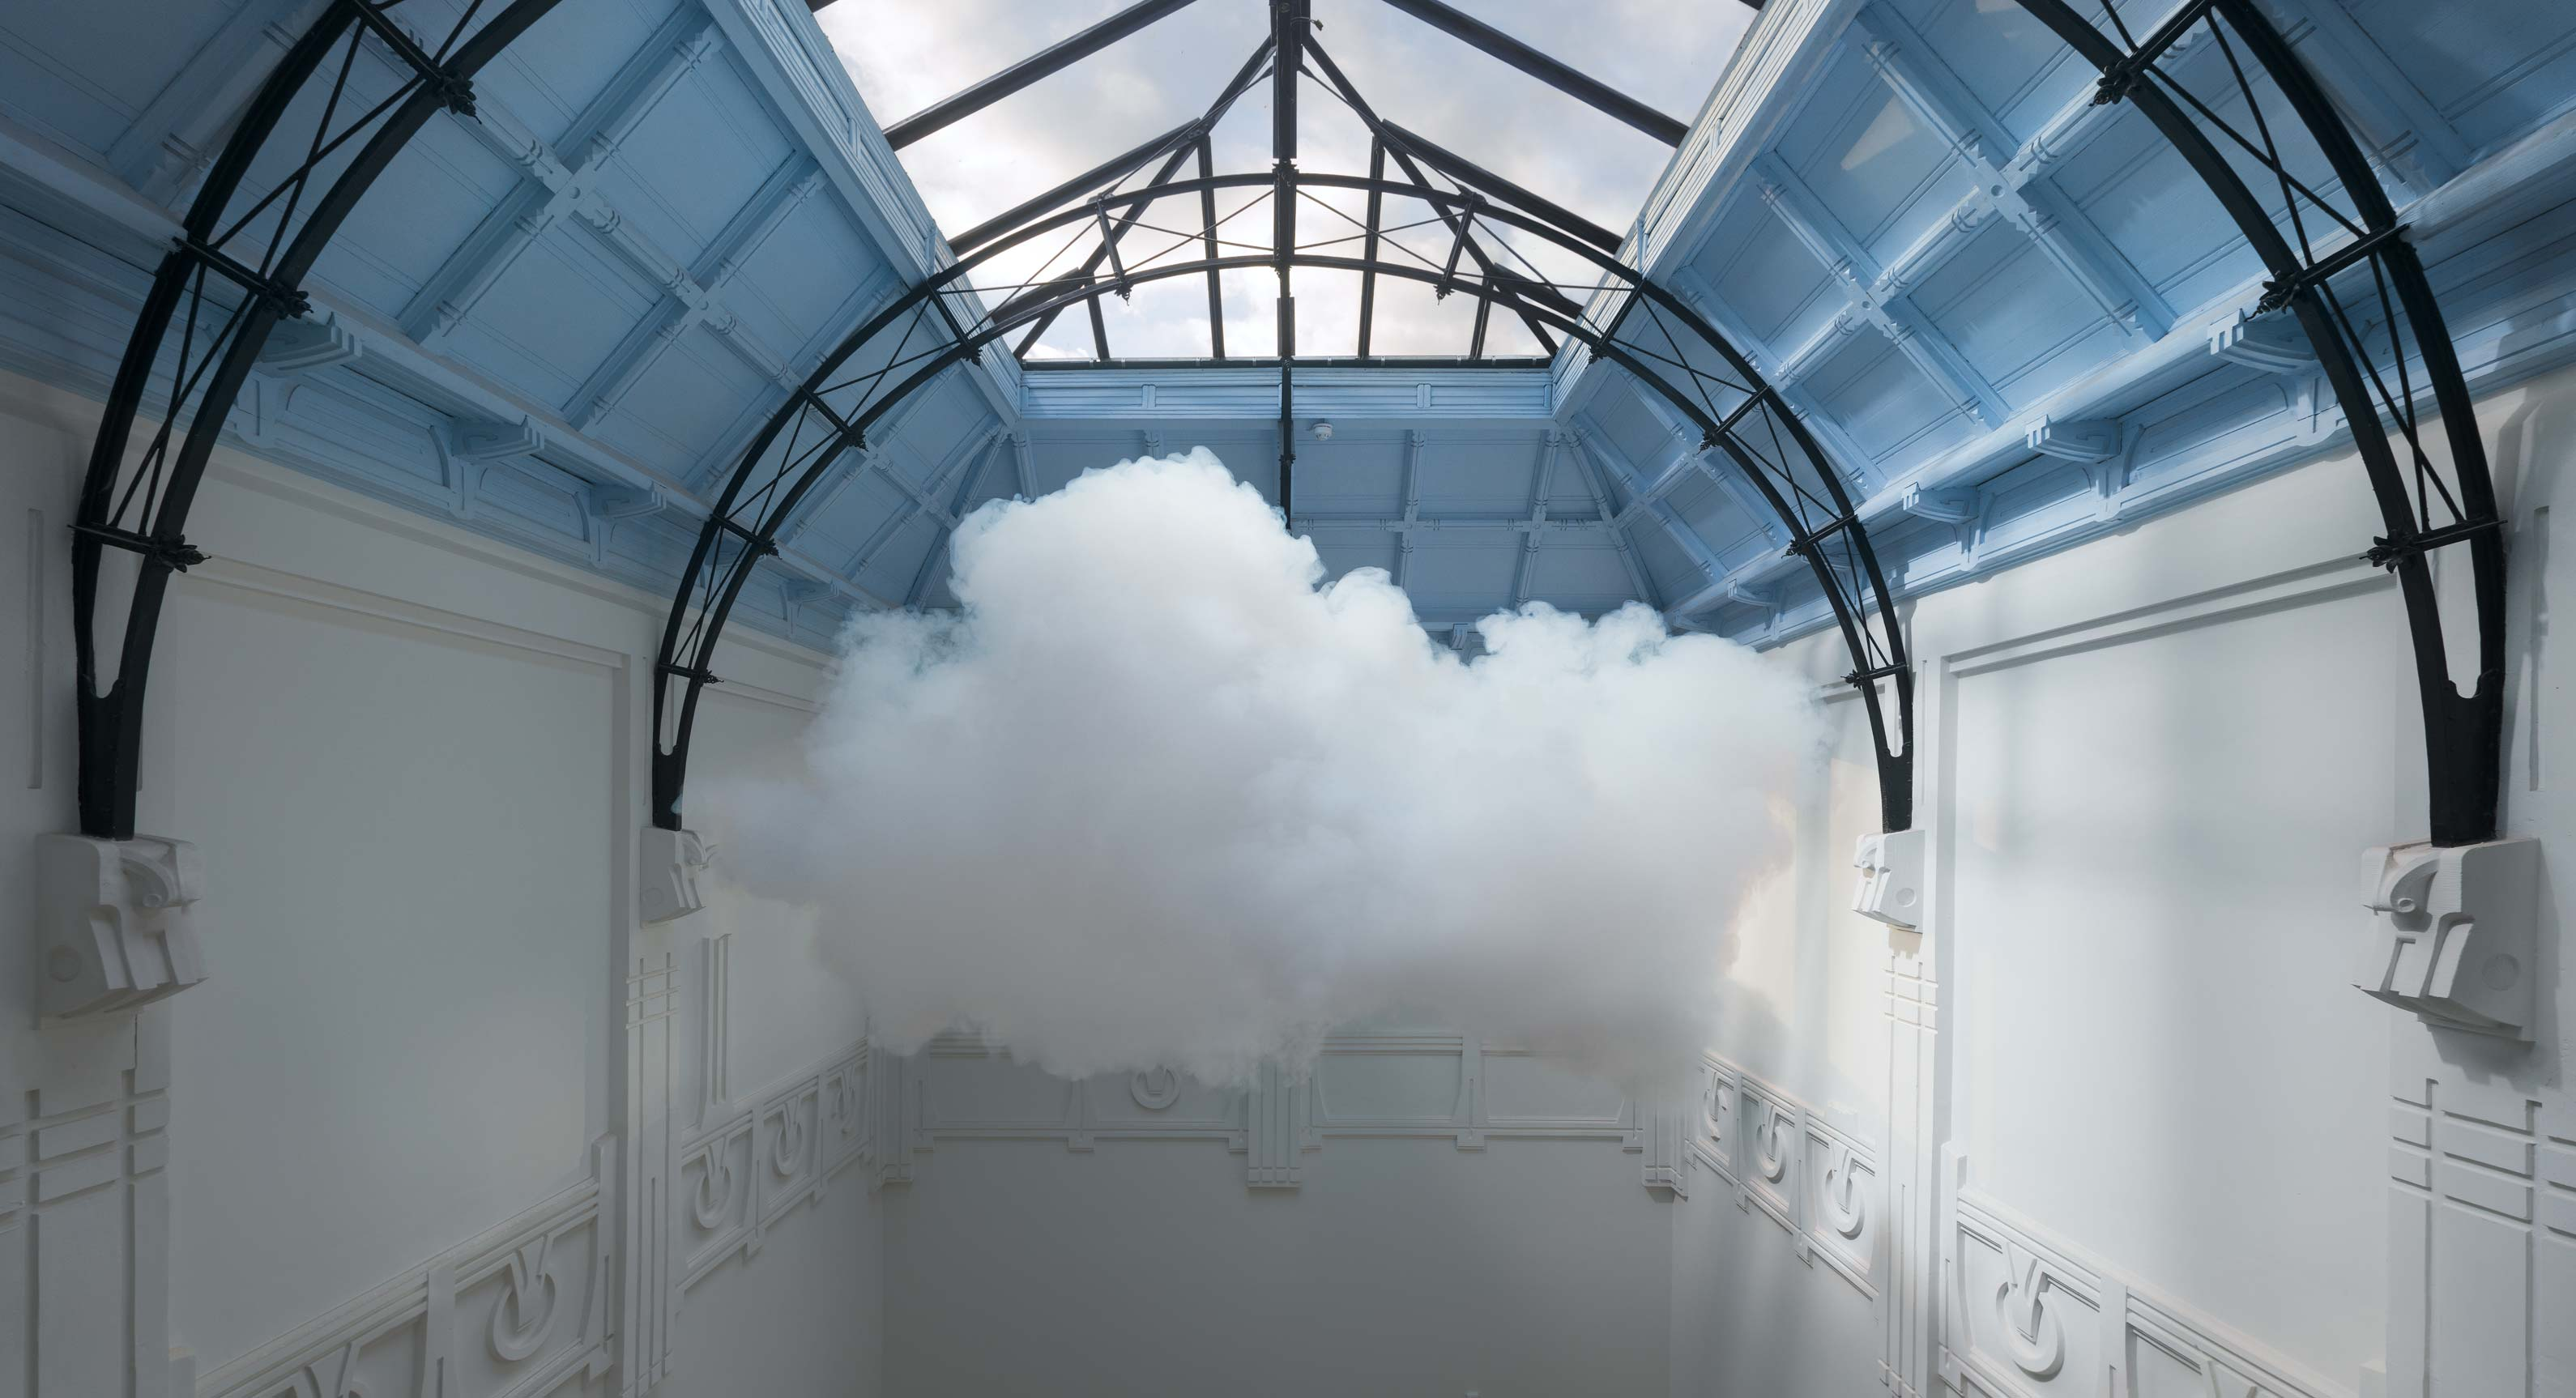 How Artist Berndnaut Smilde Makes Indoor Sculptures Out Of Clouds